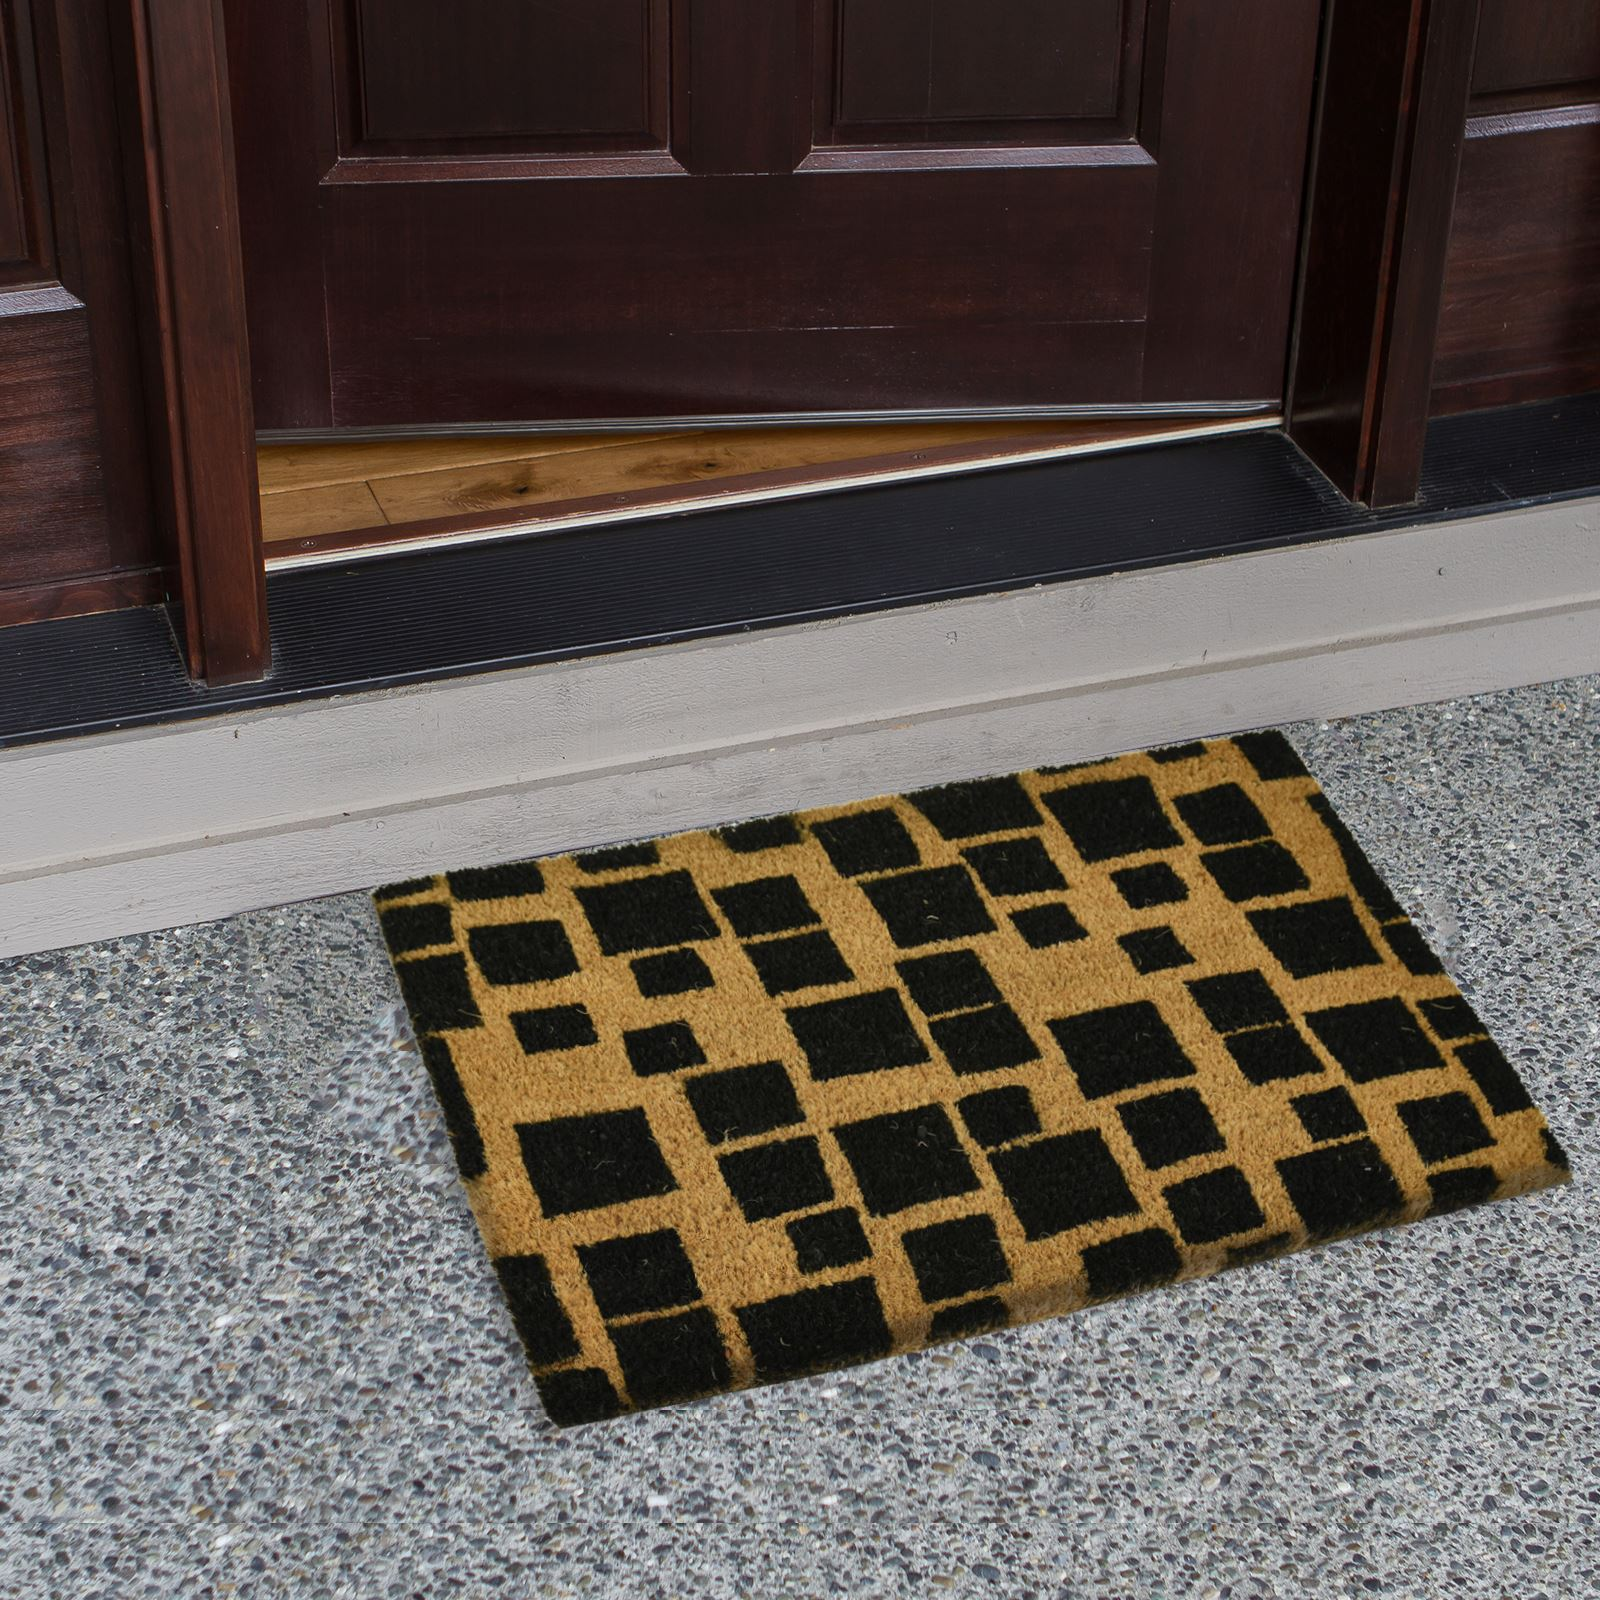 Large Door Mats Outdoor Large Welcome Door Entrance Mat Indoor Outdoor Non Slip